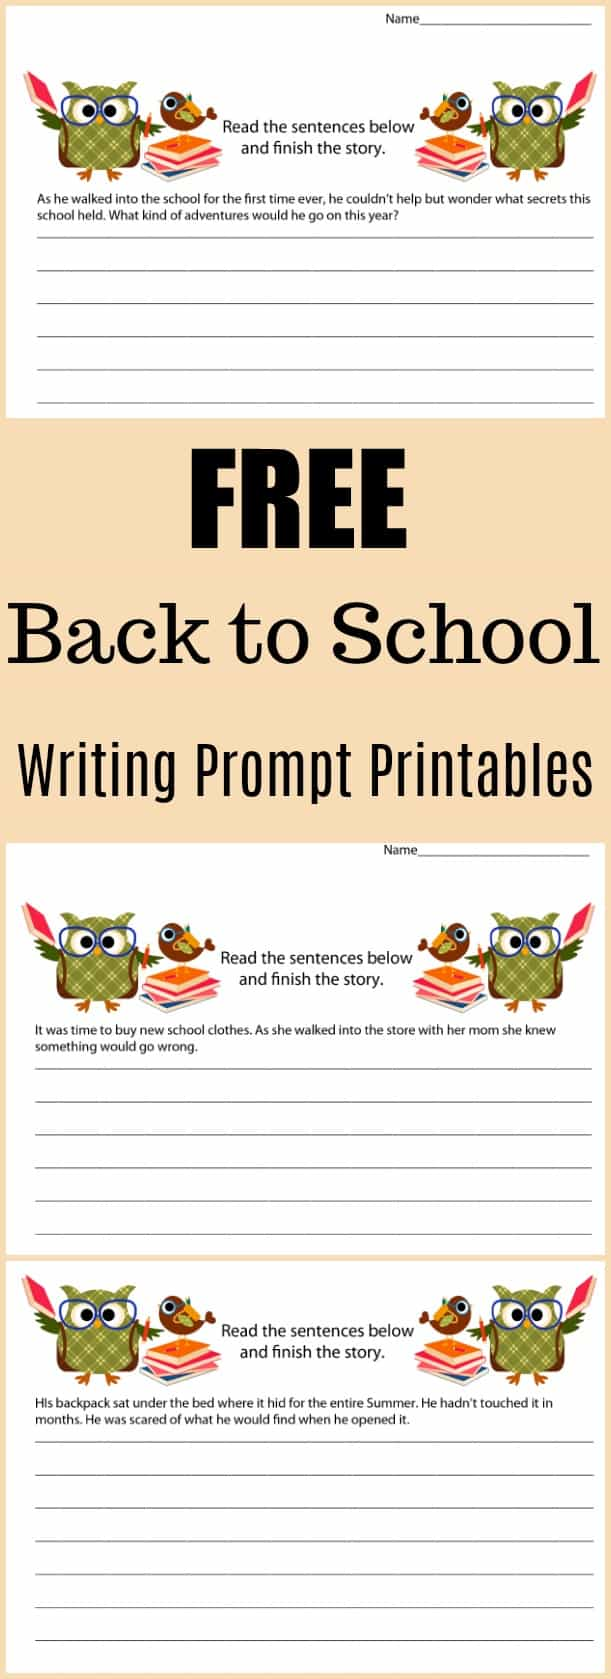 Free Back to School Writing Prompt Printable